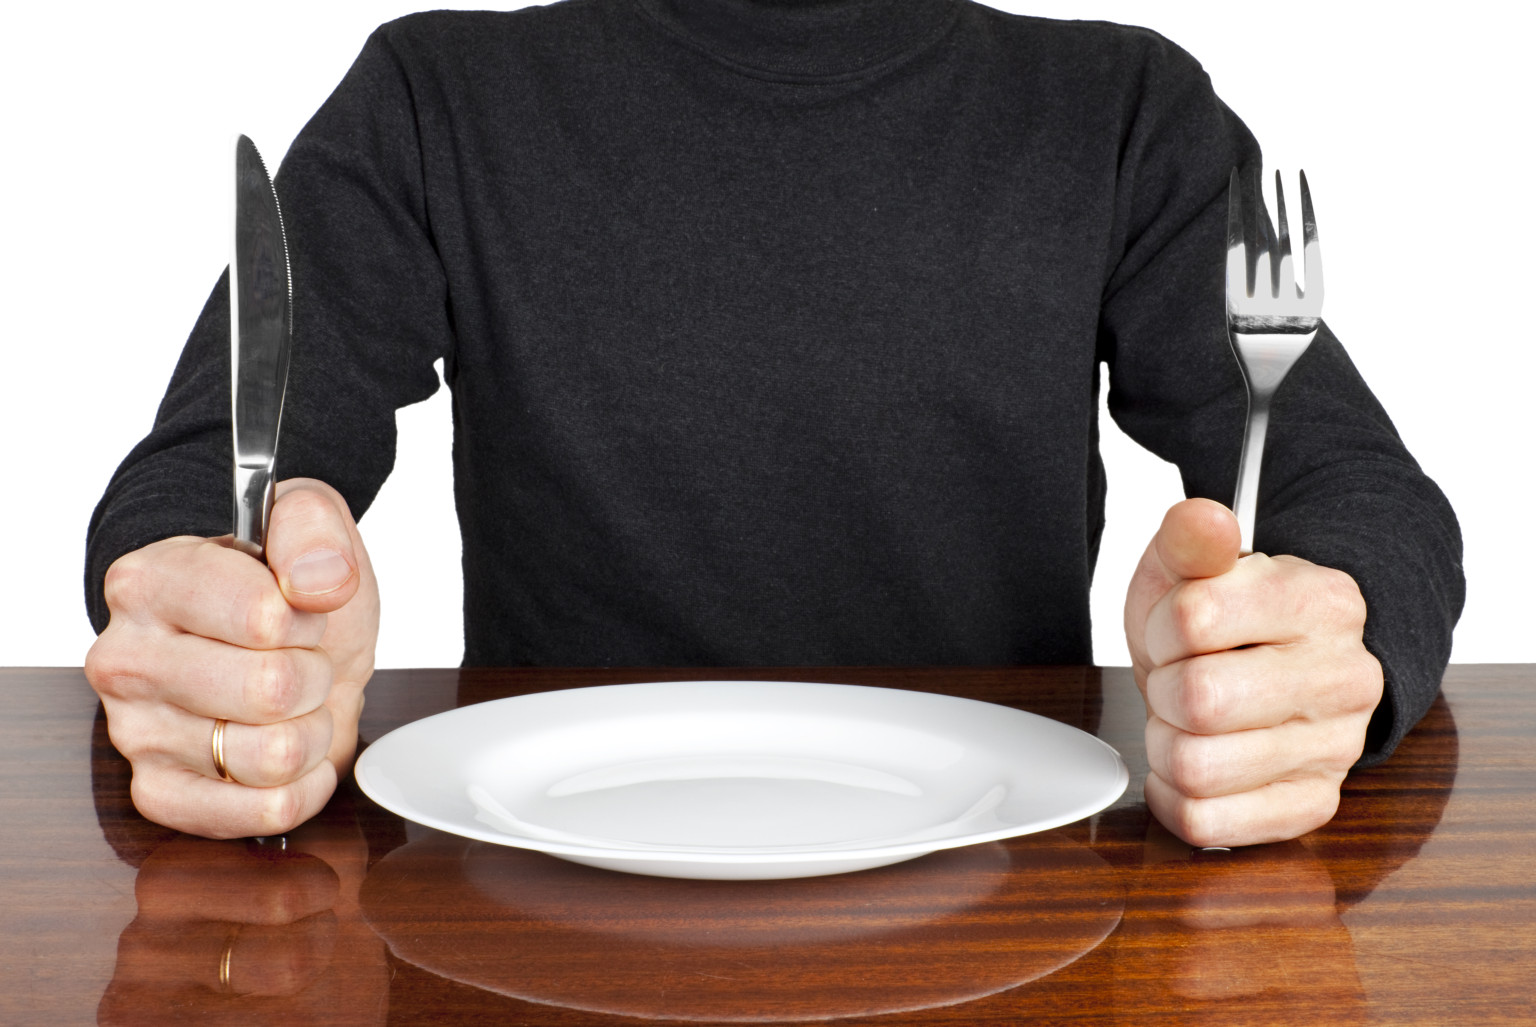 Intermittent fasting: Time to embrace less